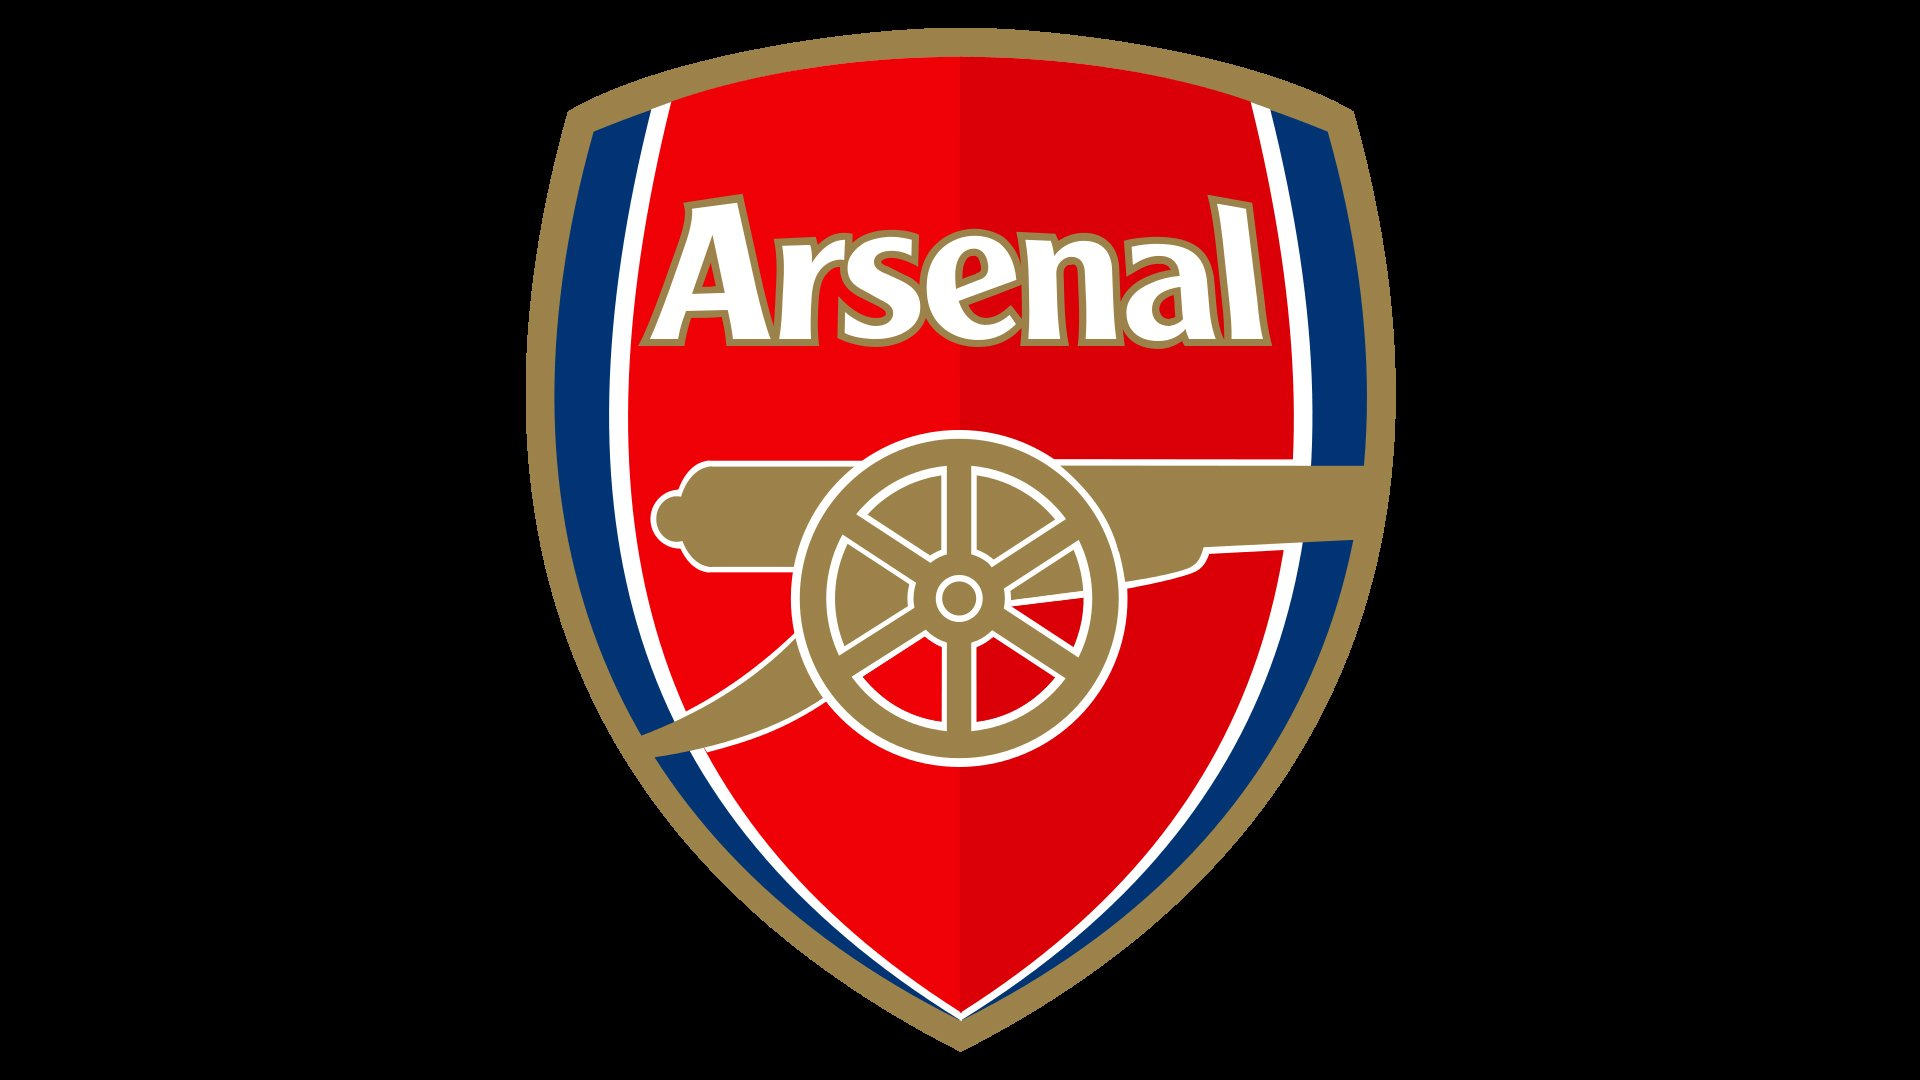 arsenal logo and symbol meaning